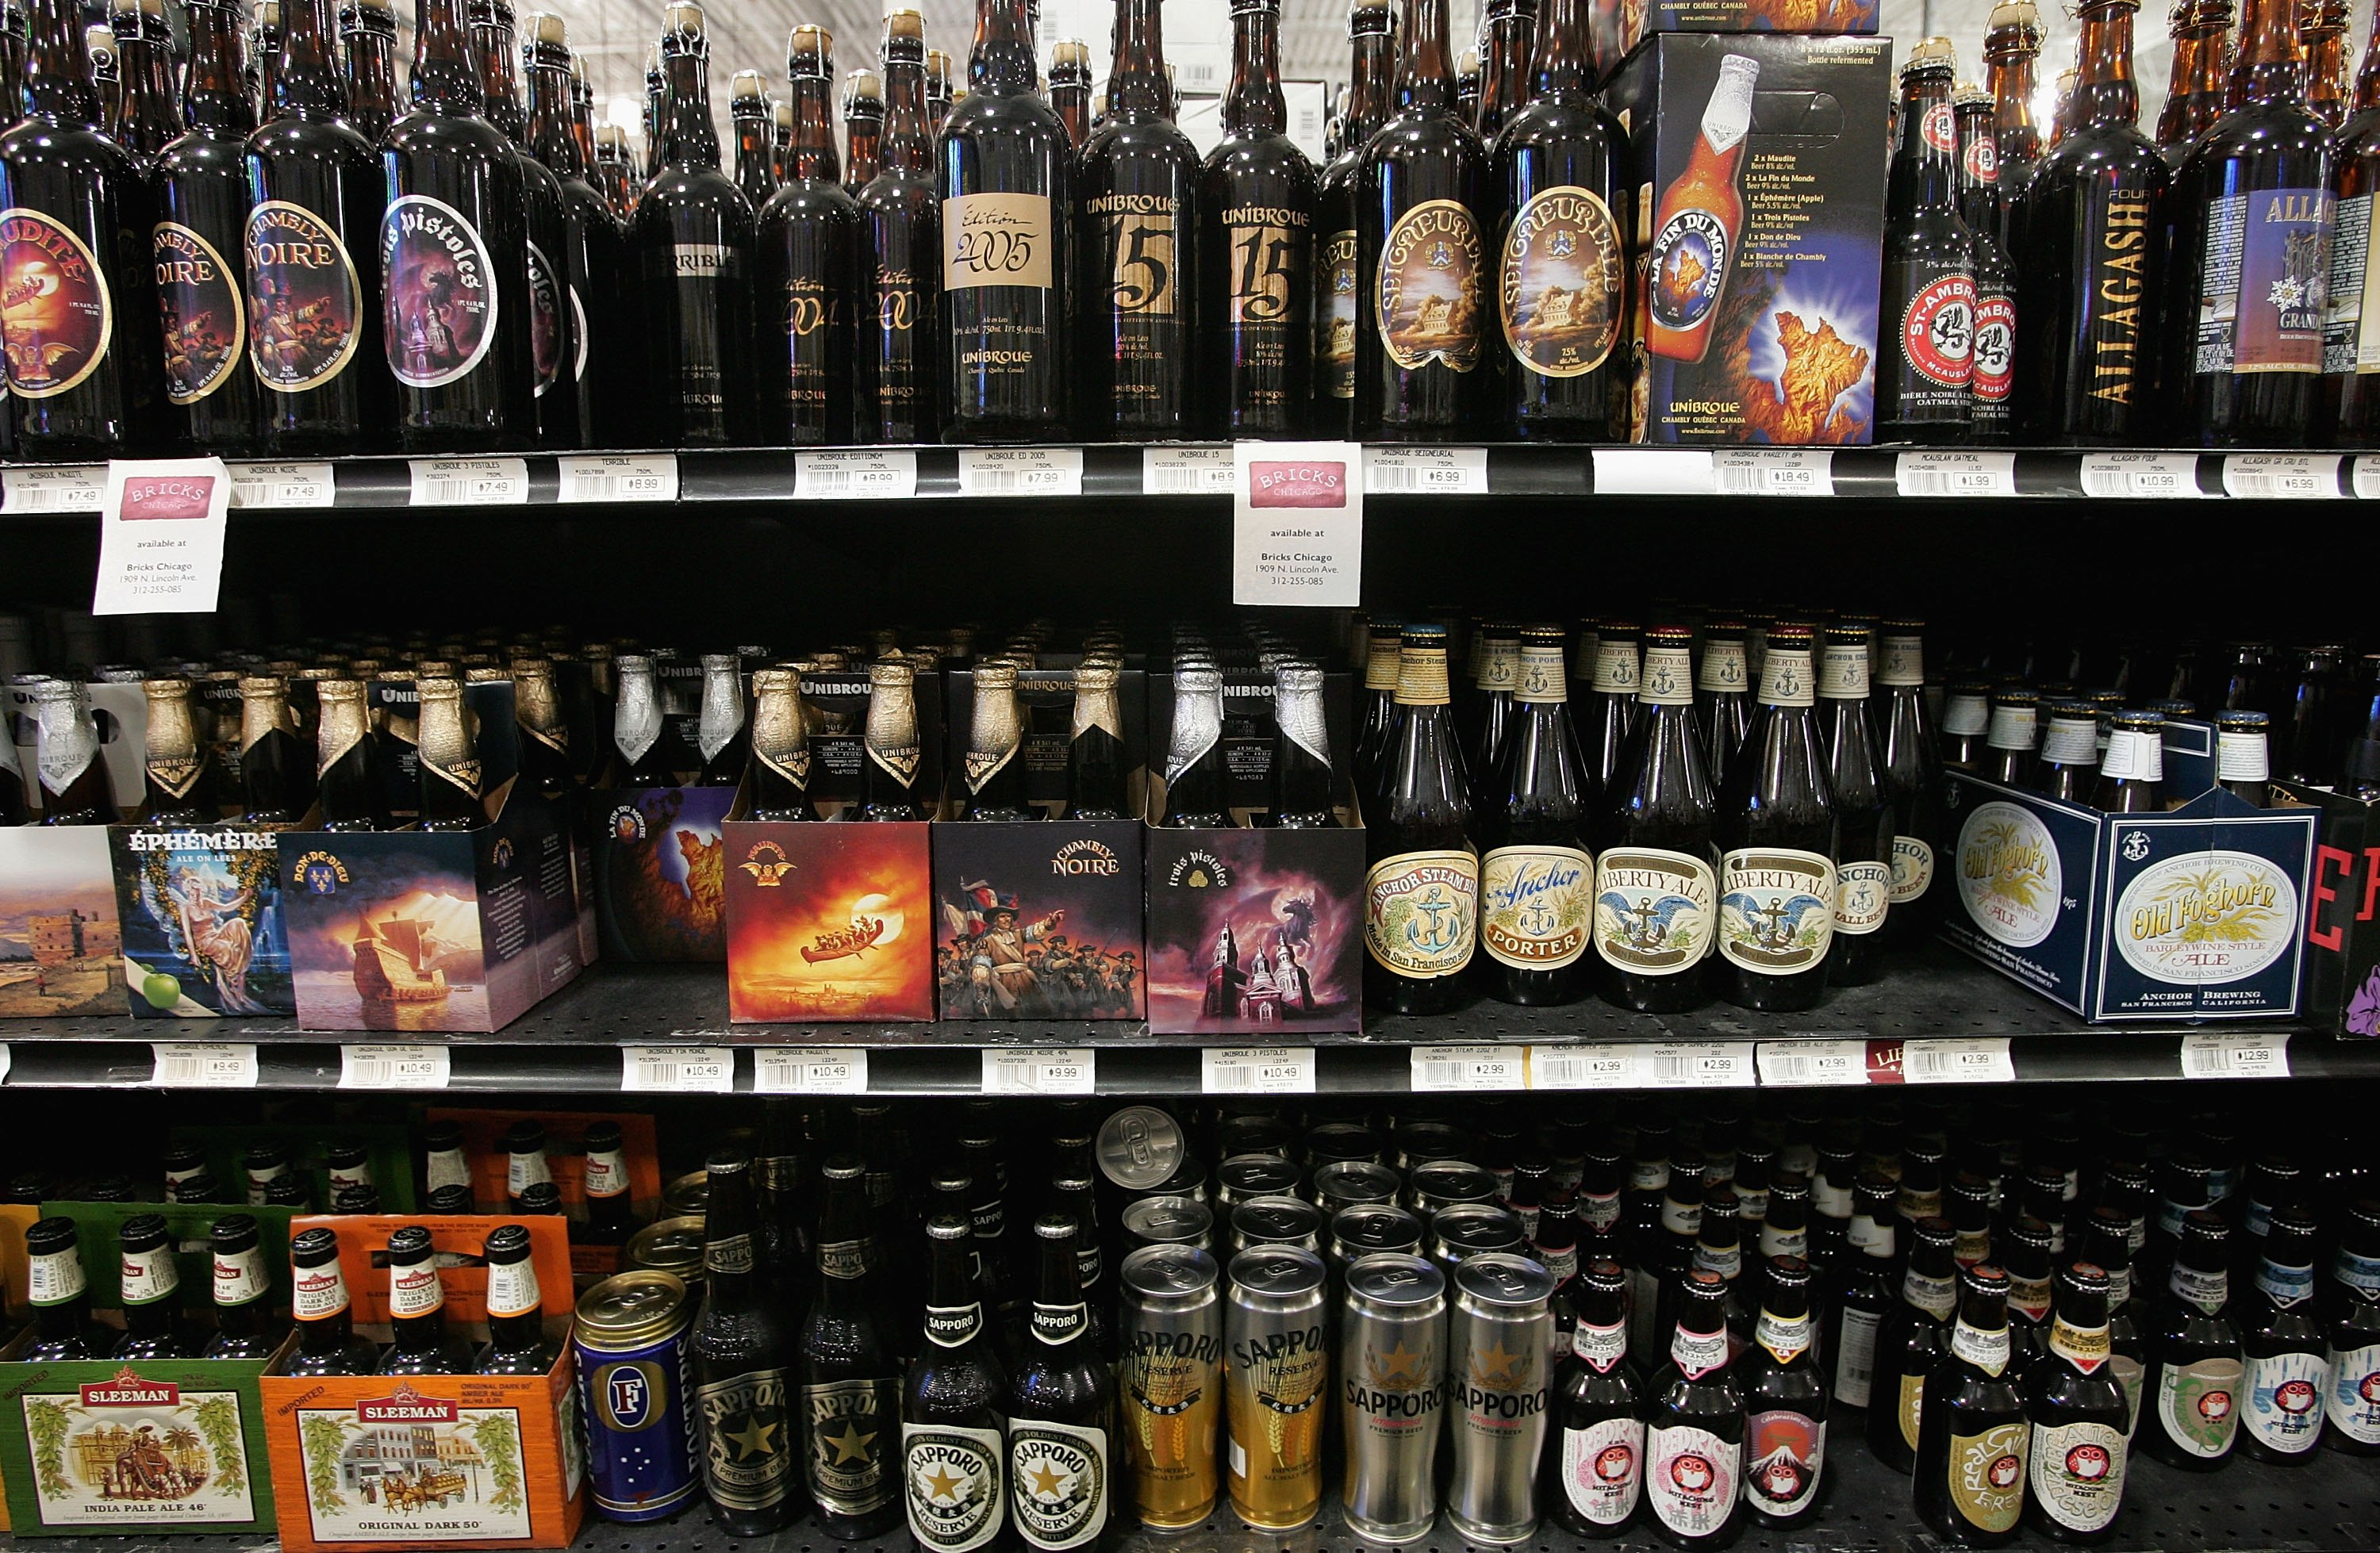 Microbreweries Flourish As Traditional Beer Sales Decline